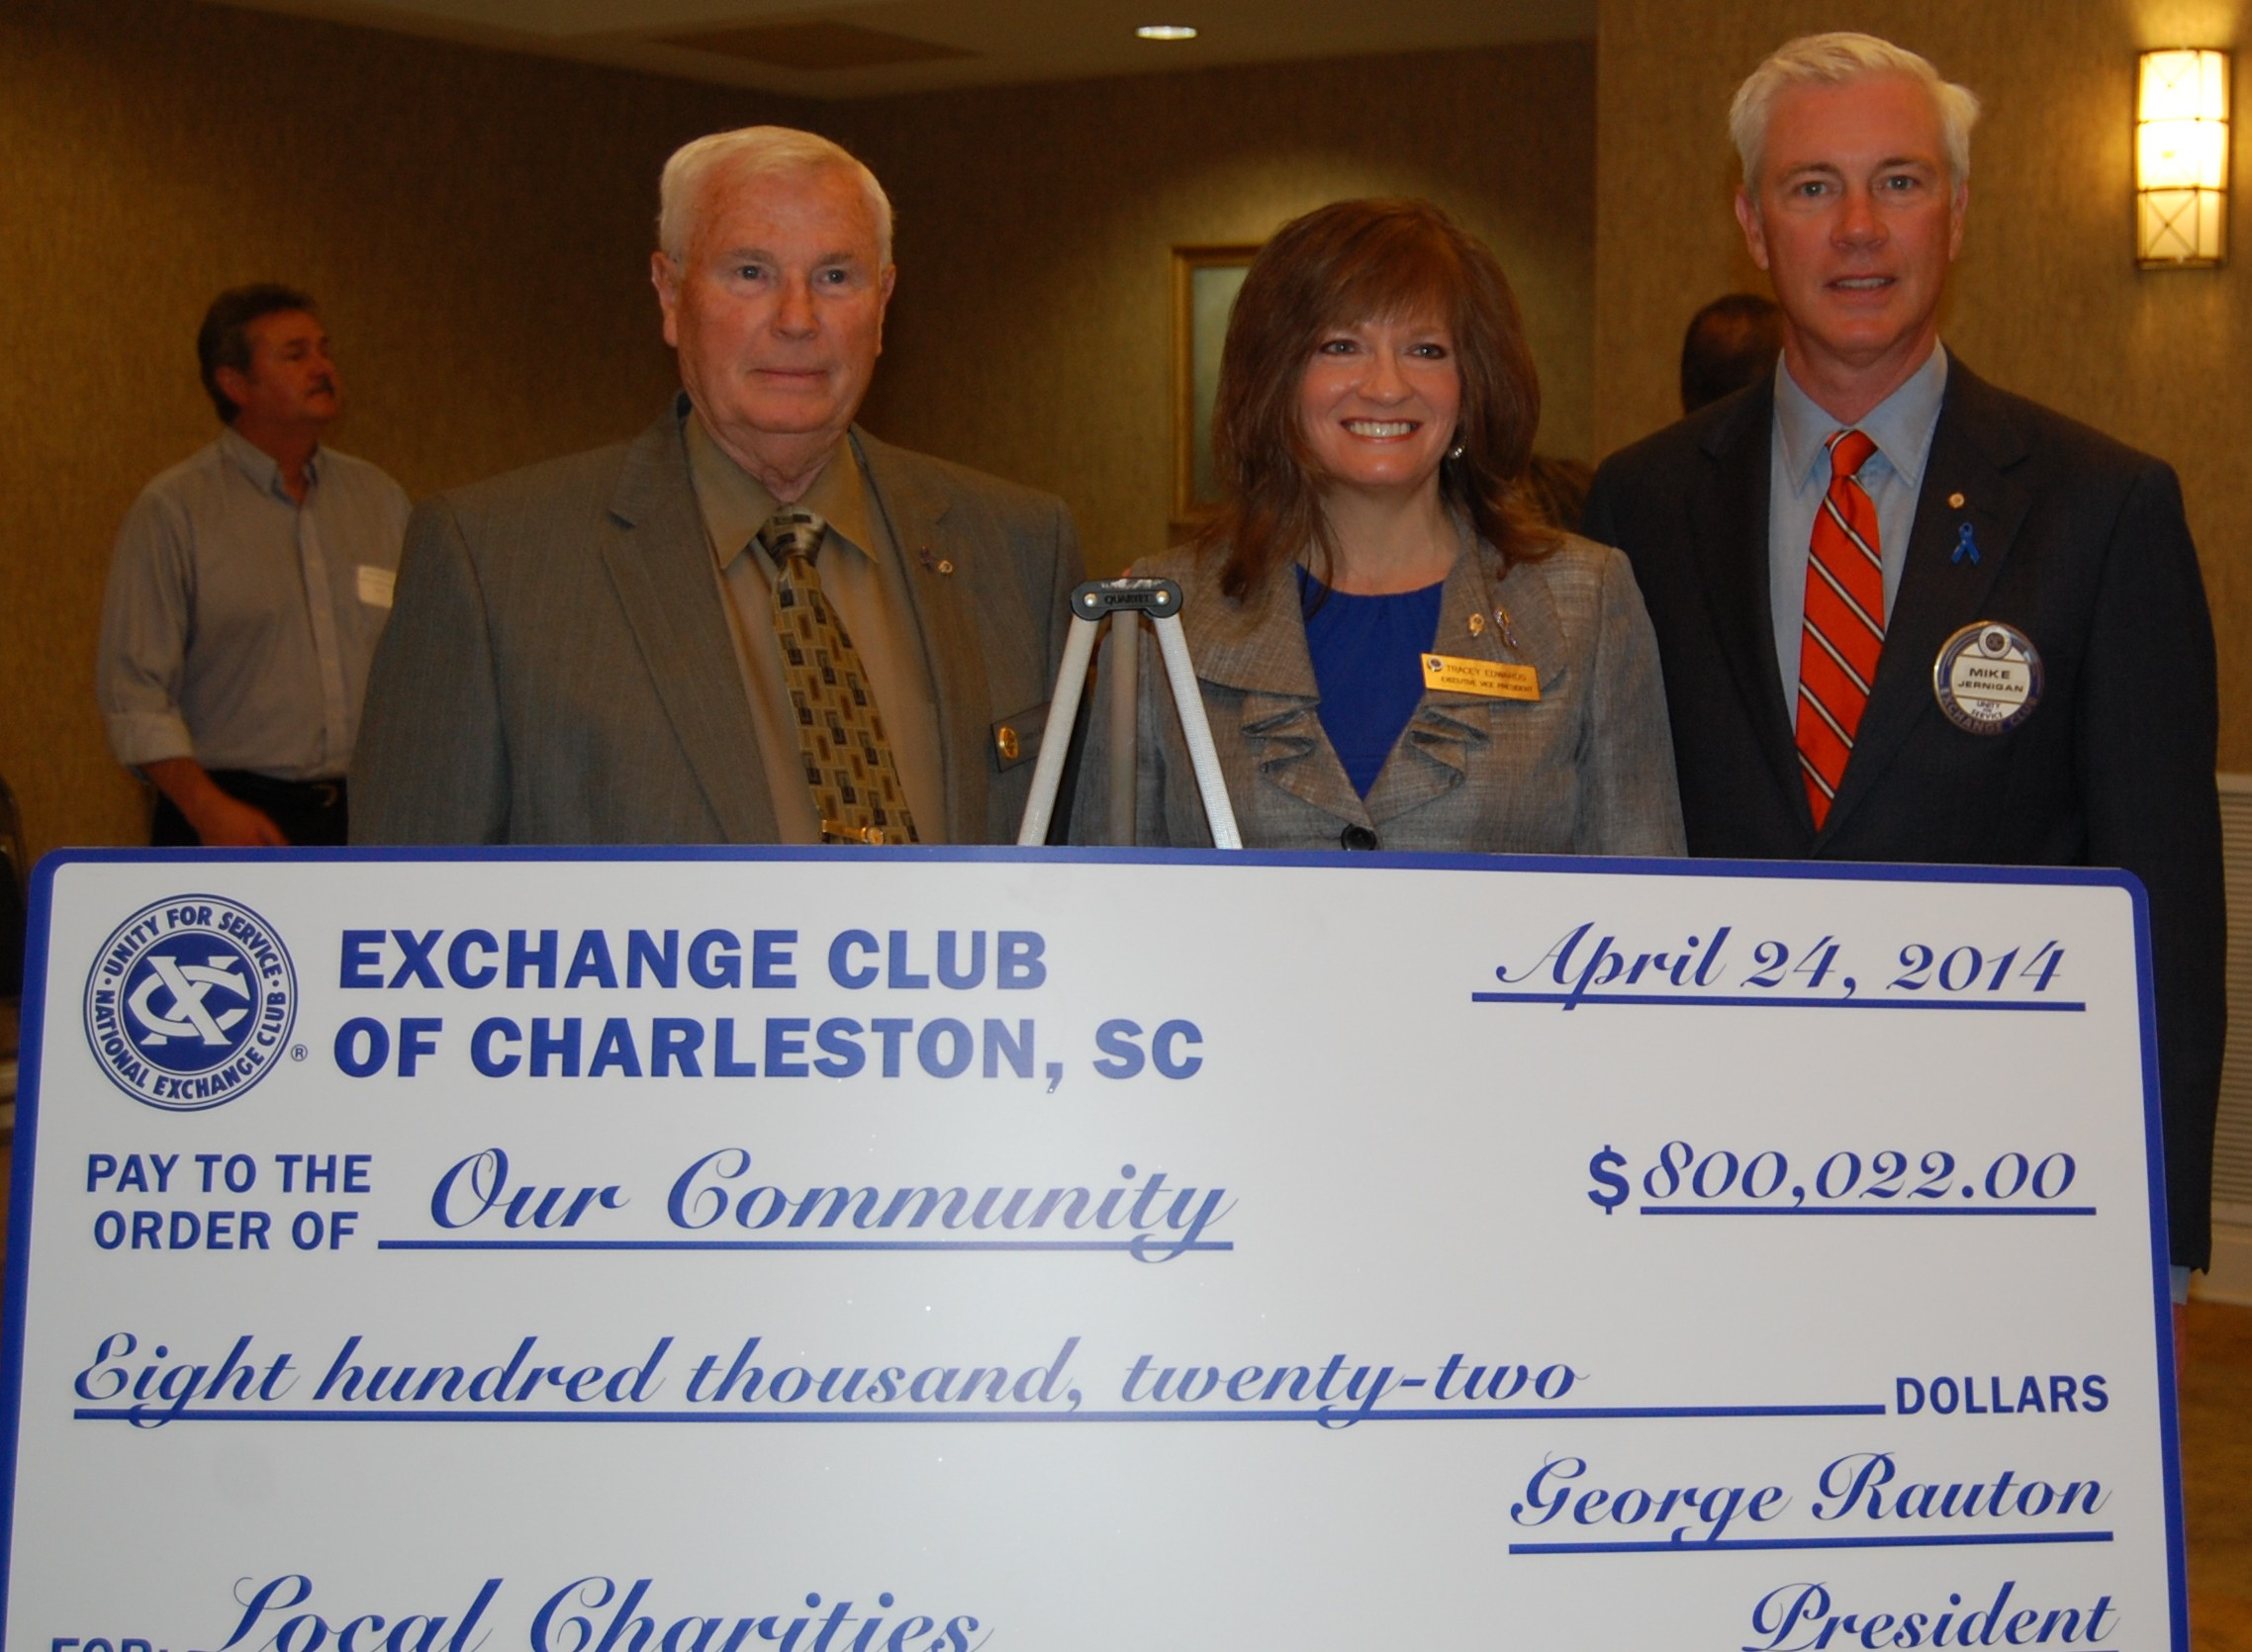 Exchange Club of Charleston, SC